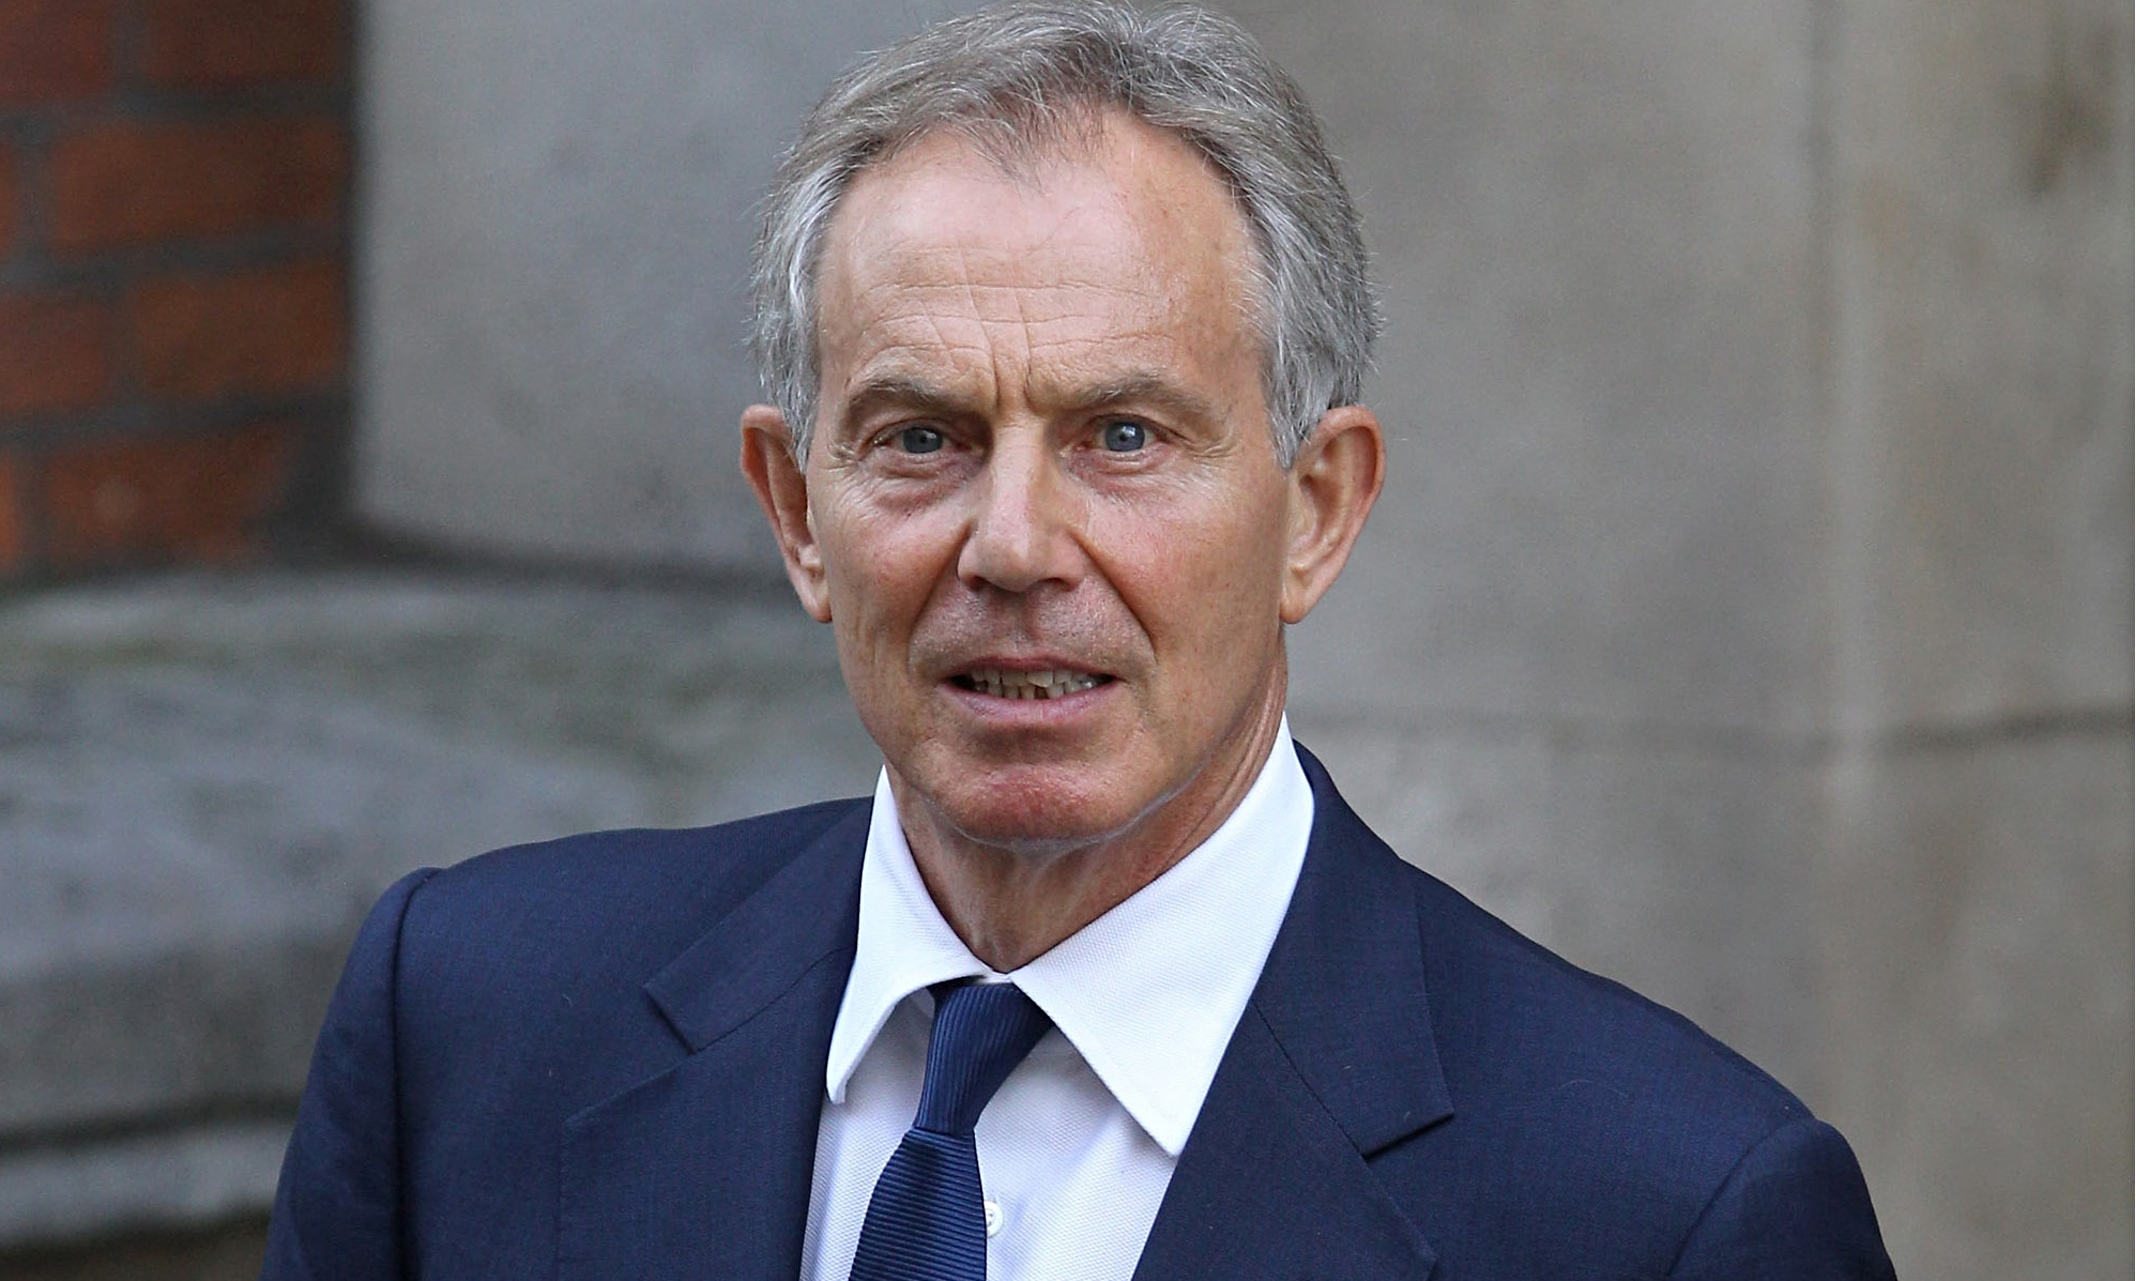 Blair gave a lecture to Serbian ministers